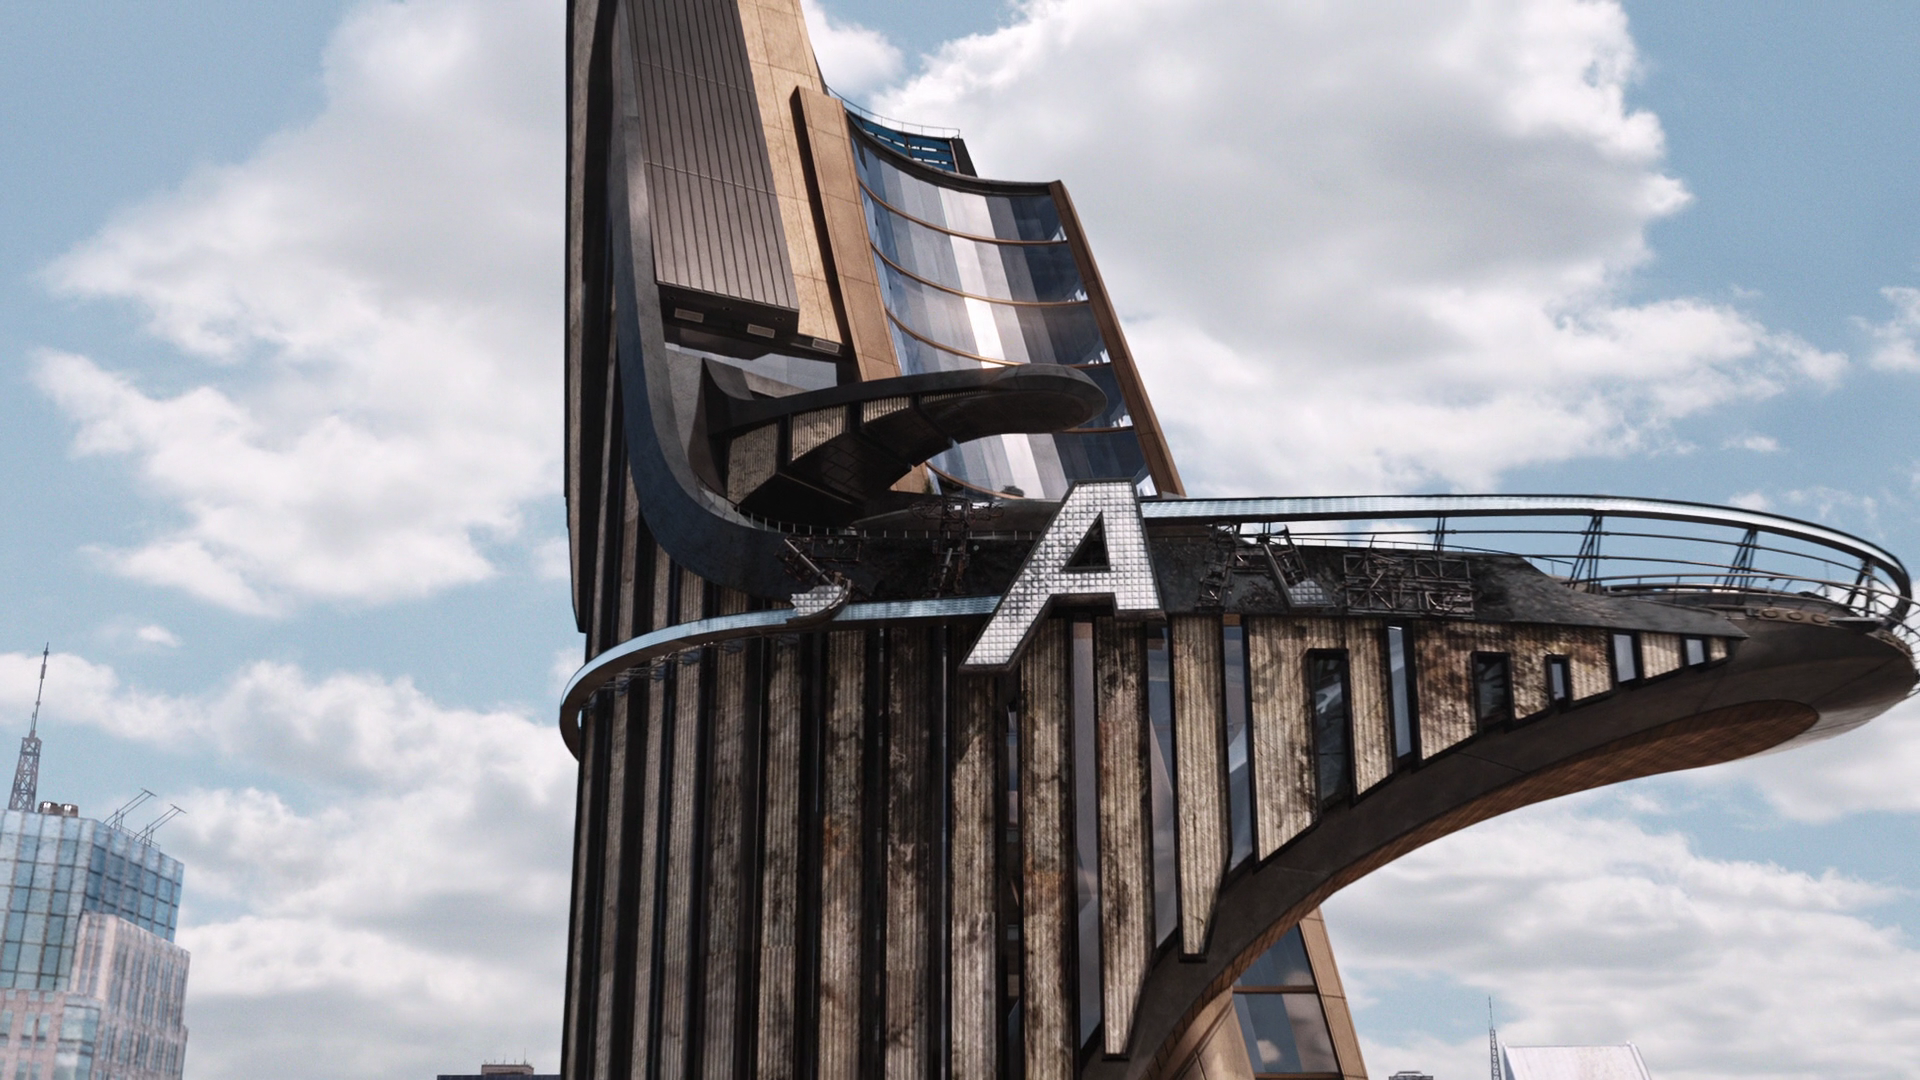 Marvel's Explanation About Why Avengers Tower Doesn't Appear On Netflix Shows Is A Load Of Crap